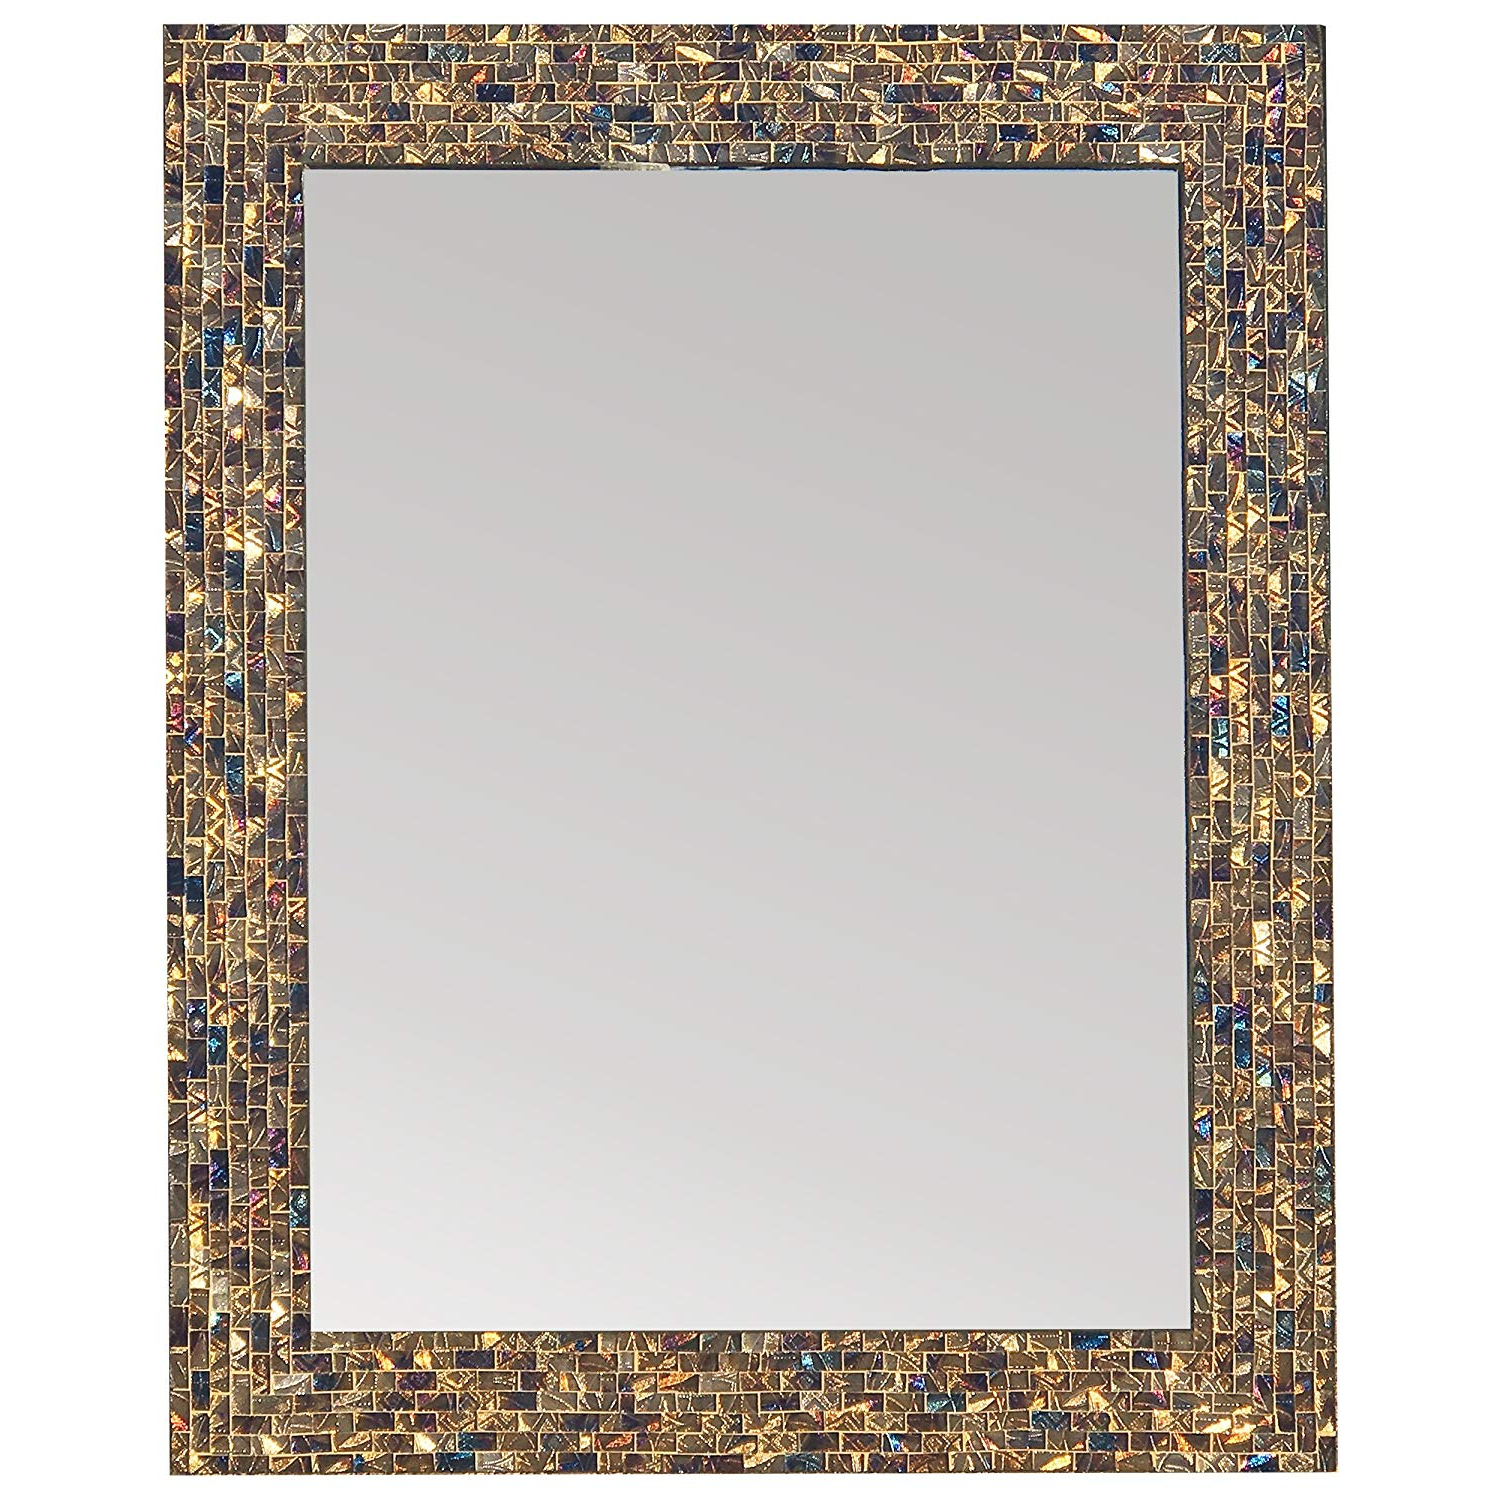 Recent Mosaic Framed Wall Mirrors Intended For Multi Colored & Gold, Luxe Mosaic Glass Framed Wall Mirror, Decorative  Embossed Mosaic Rectangular Vanity Mirror/accent Mirror (Large) (Gallery 7 of 20)